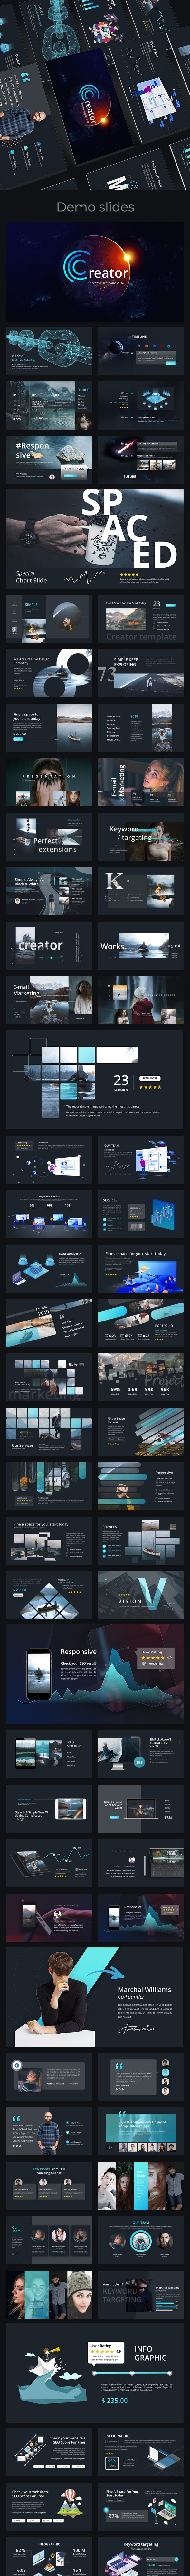 Creator Creative Powerpoint Template - Creative PowerPoint Templates